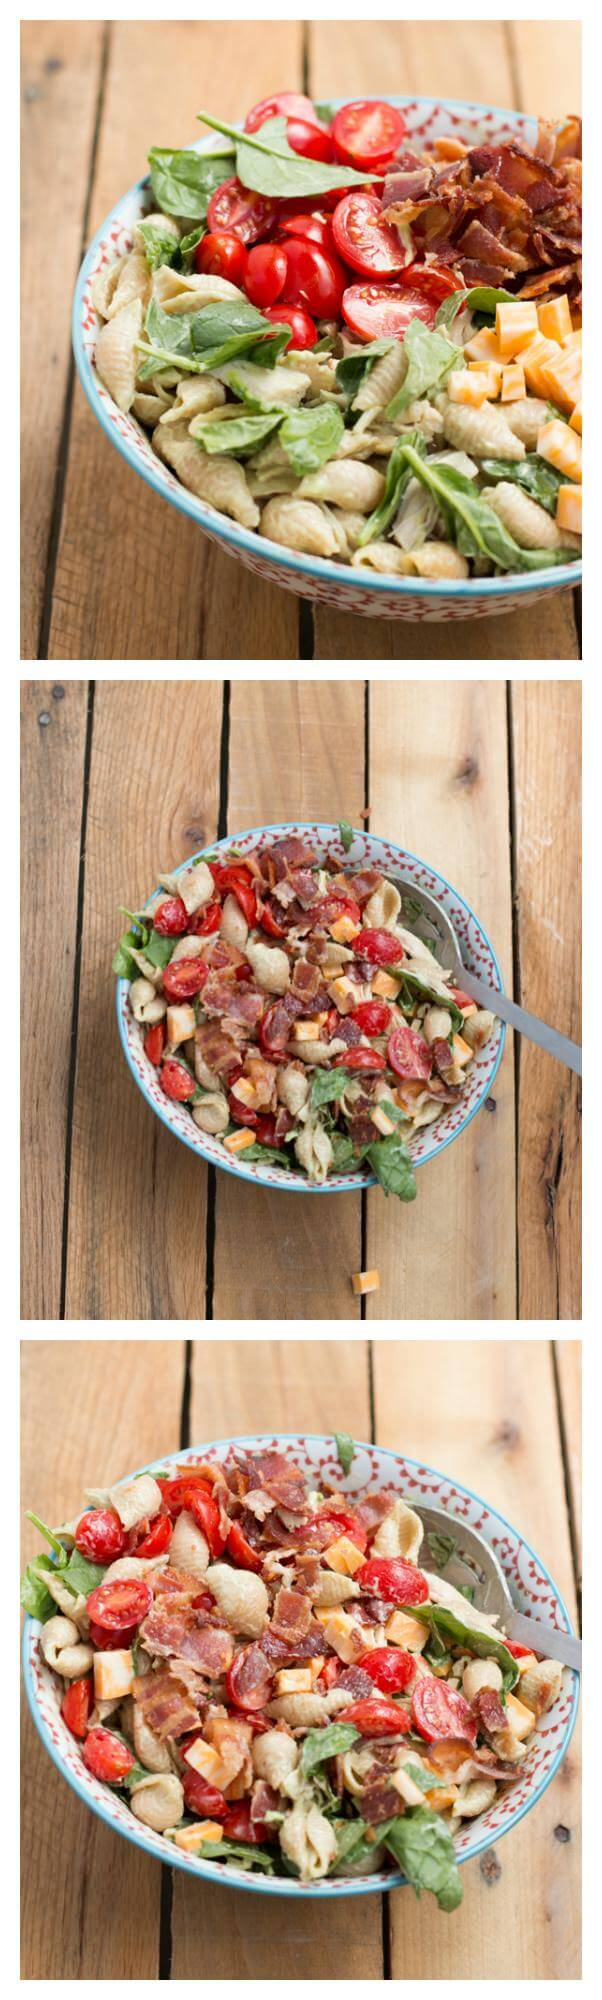 california club pasta salad recipe for those lazy summer days. We love the chunks of chicken, avocado and salty, crisp bacon!